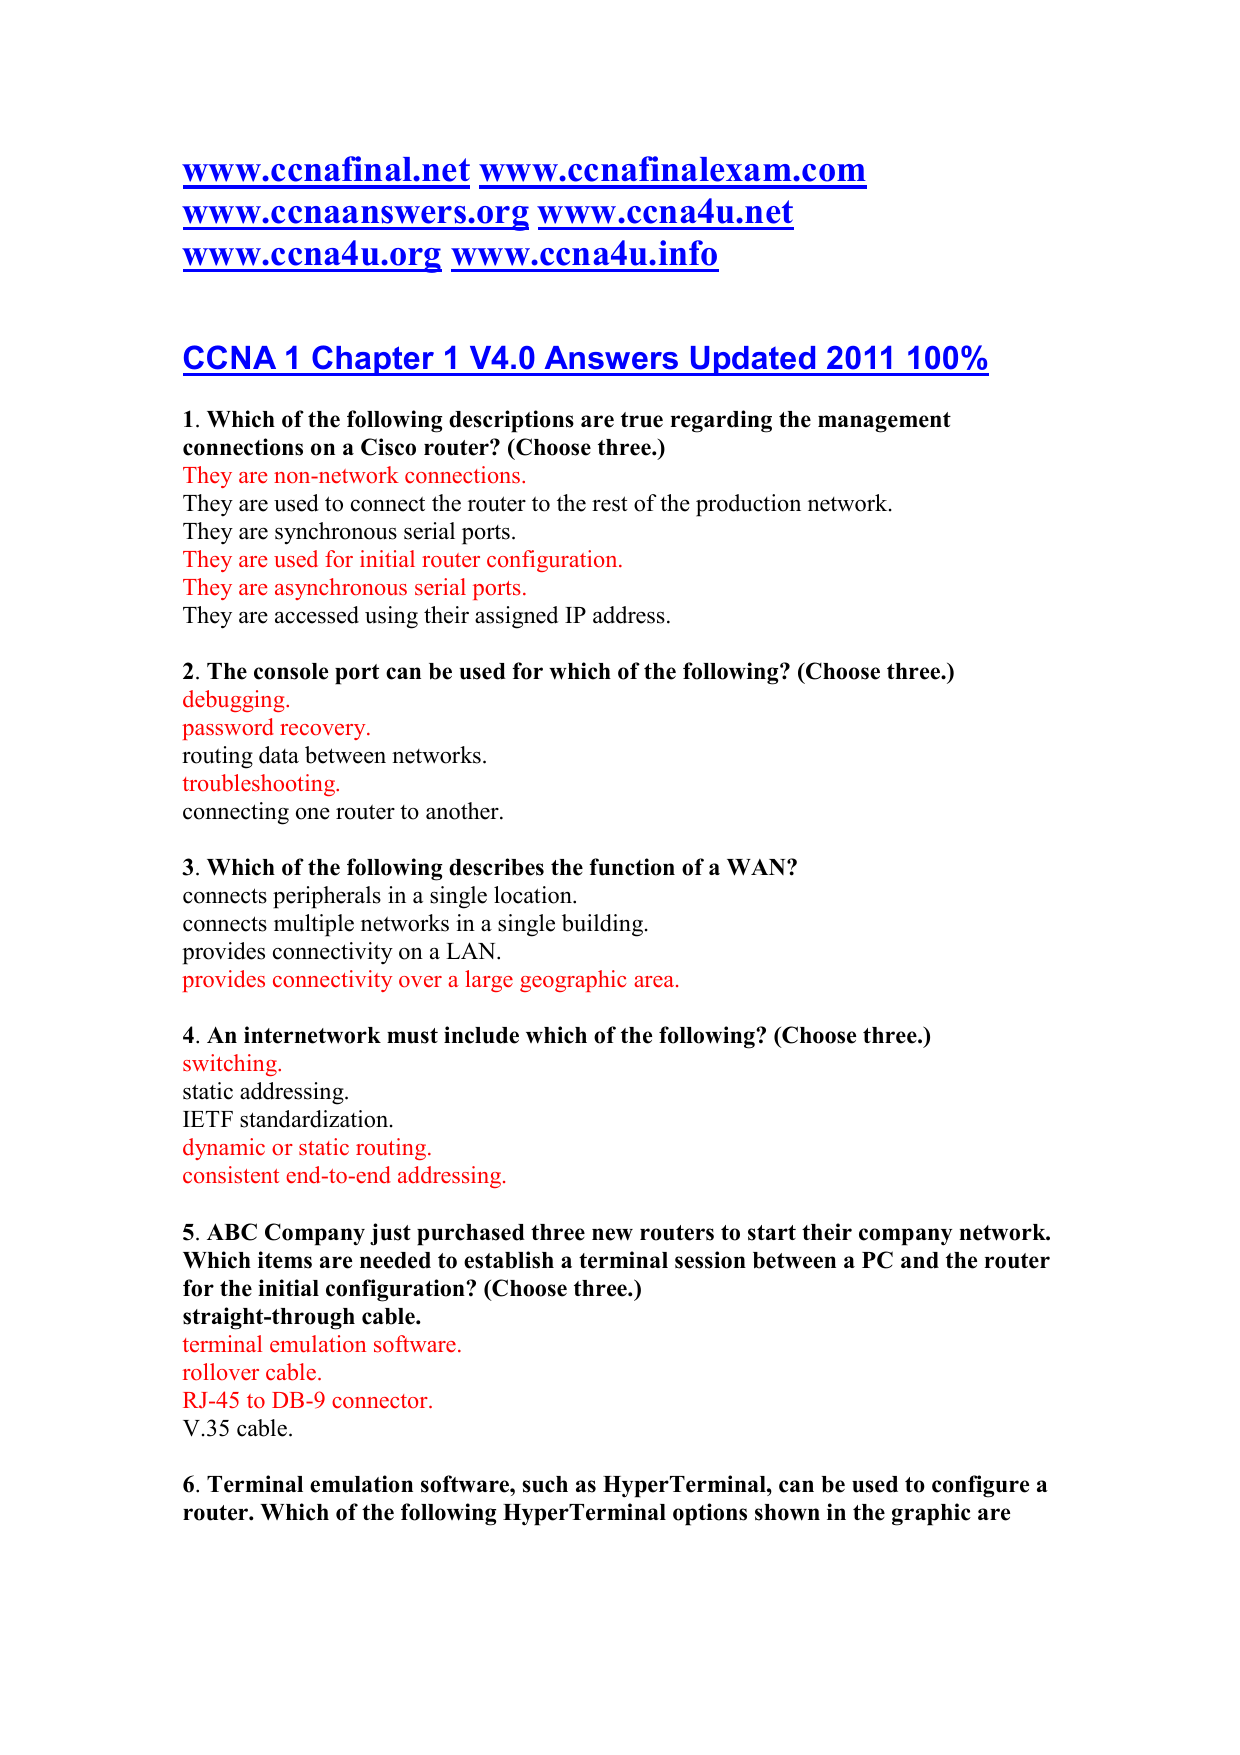 CCNA 1 Chapter 1 V4 0 Answers Updated 2011 100%